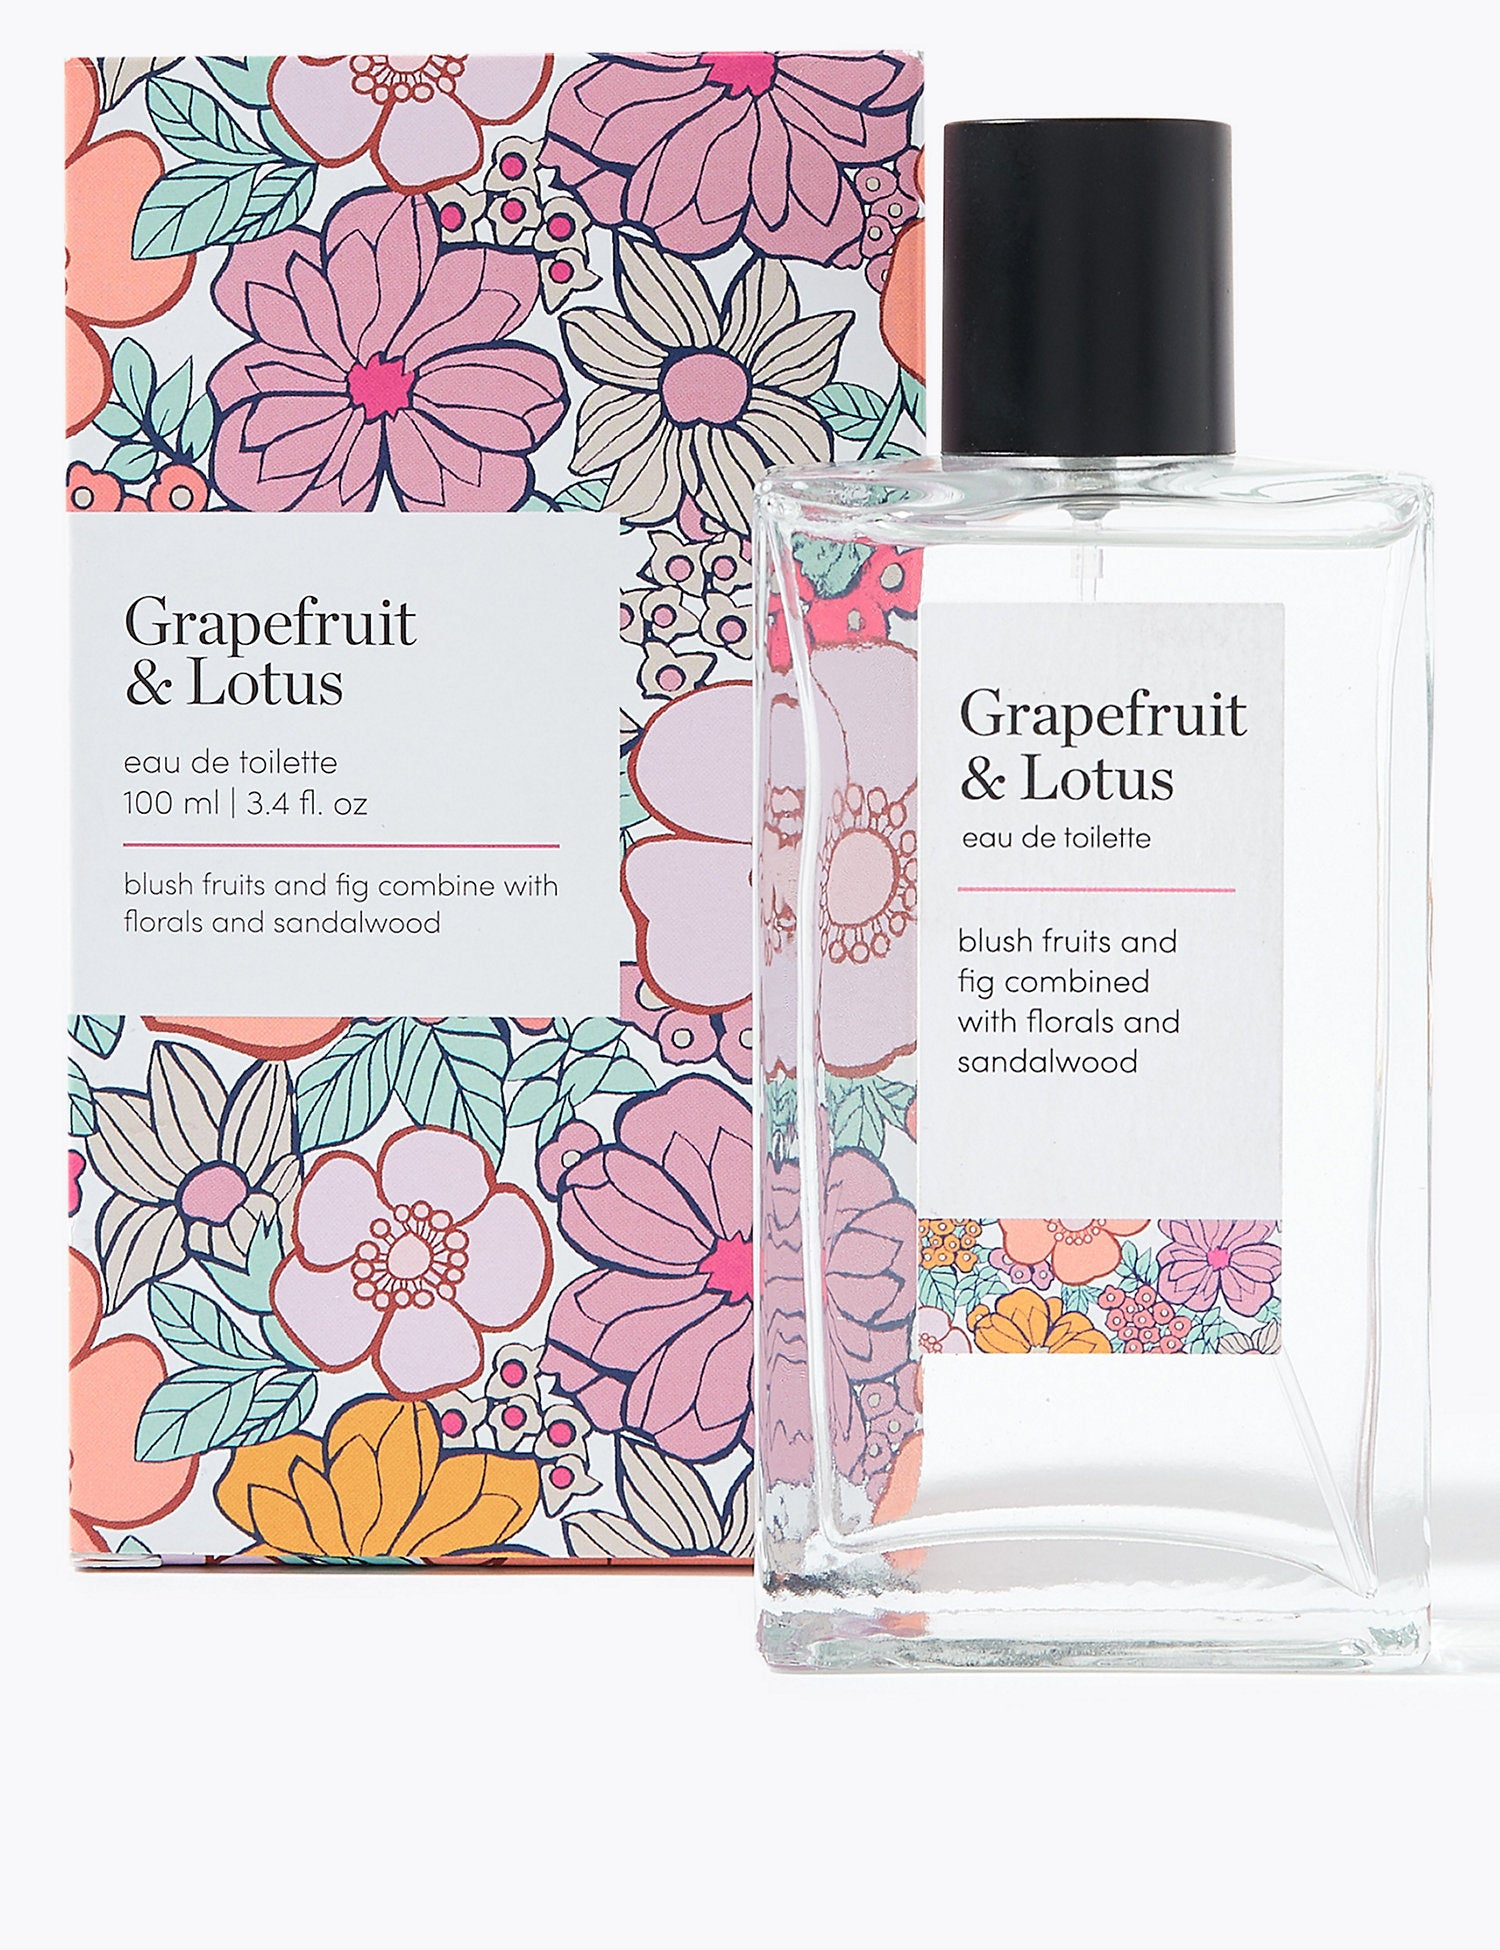 Grapefruit & Lotus Eau de Toilette 100ml